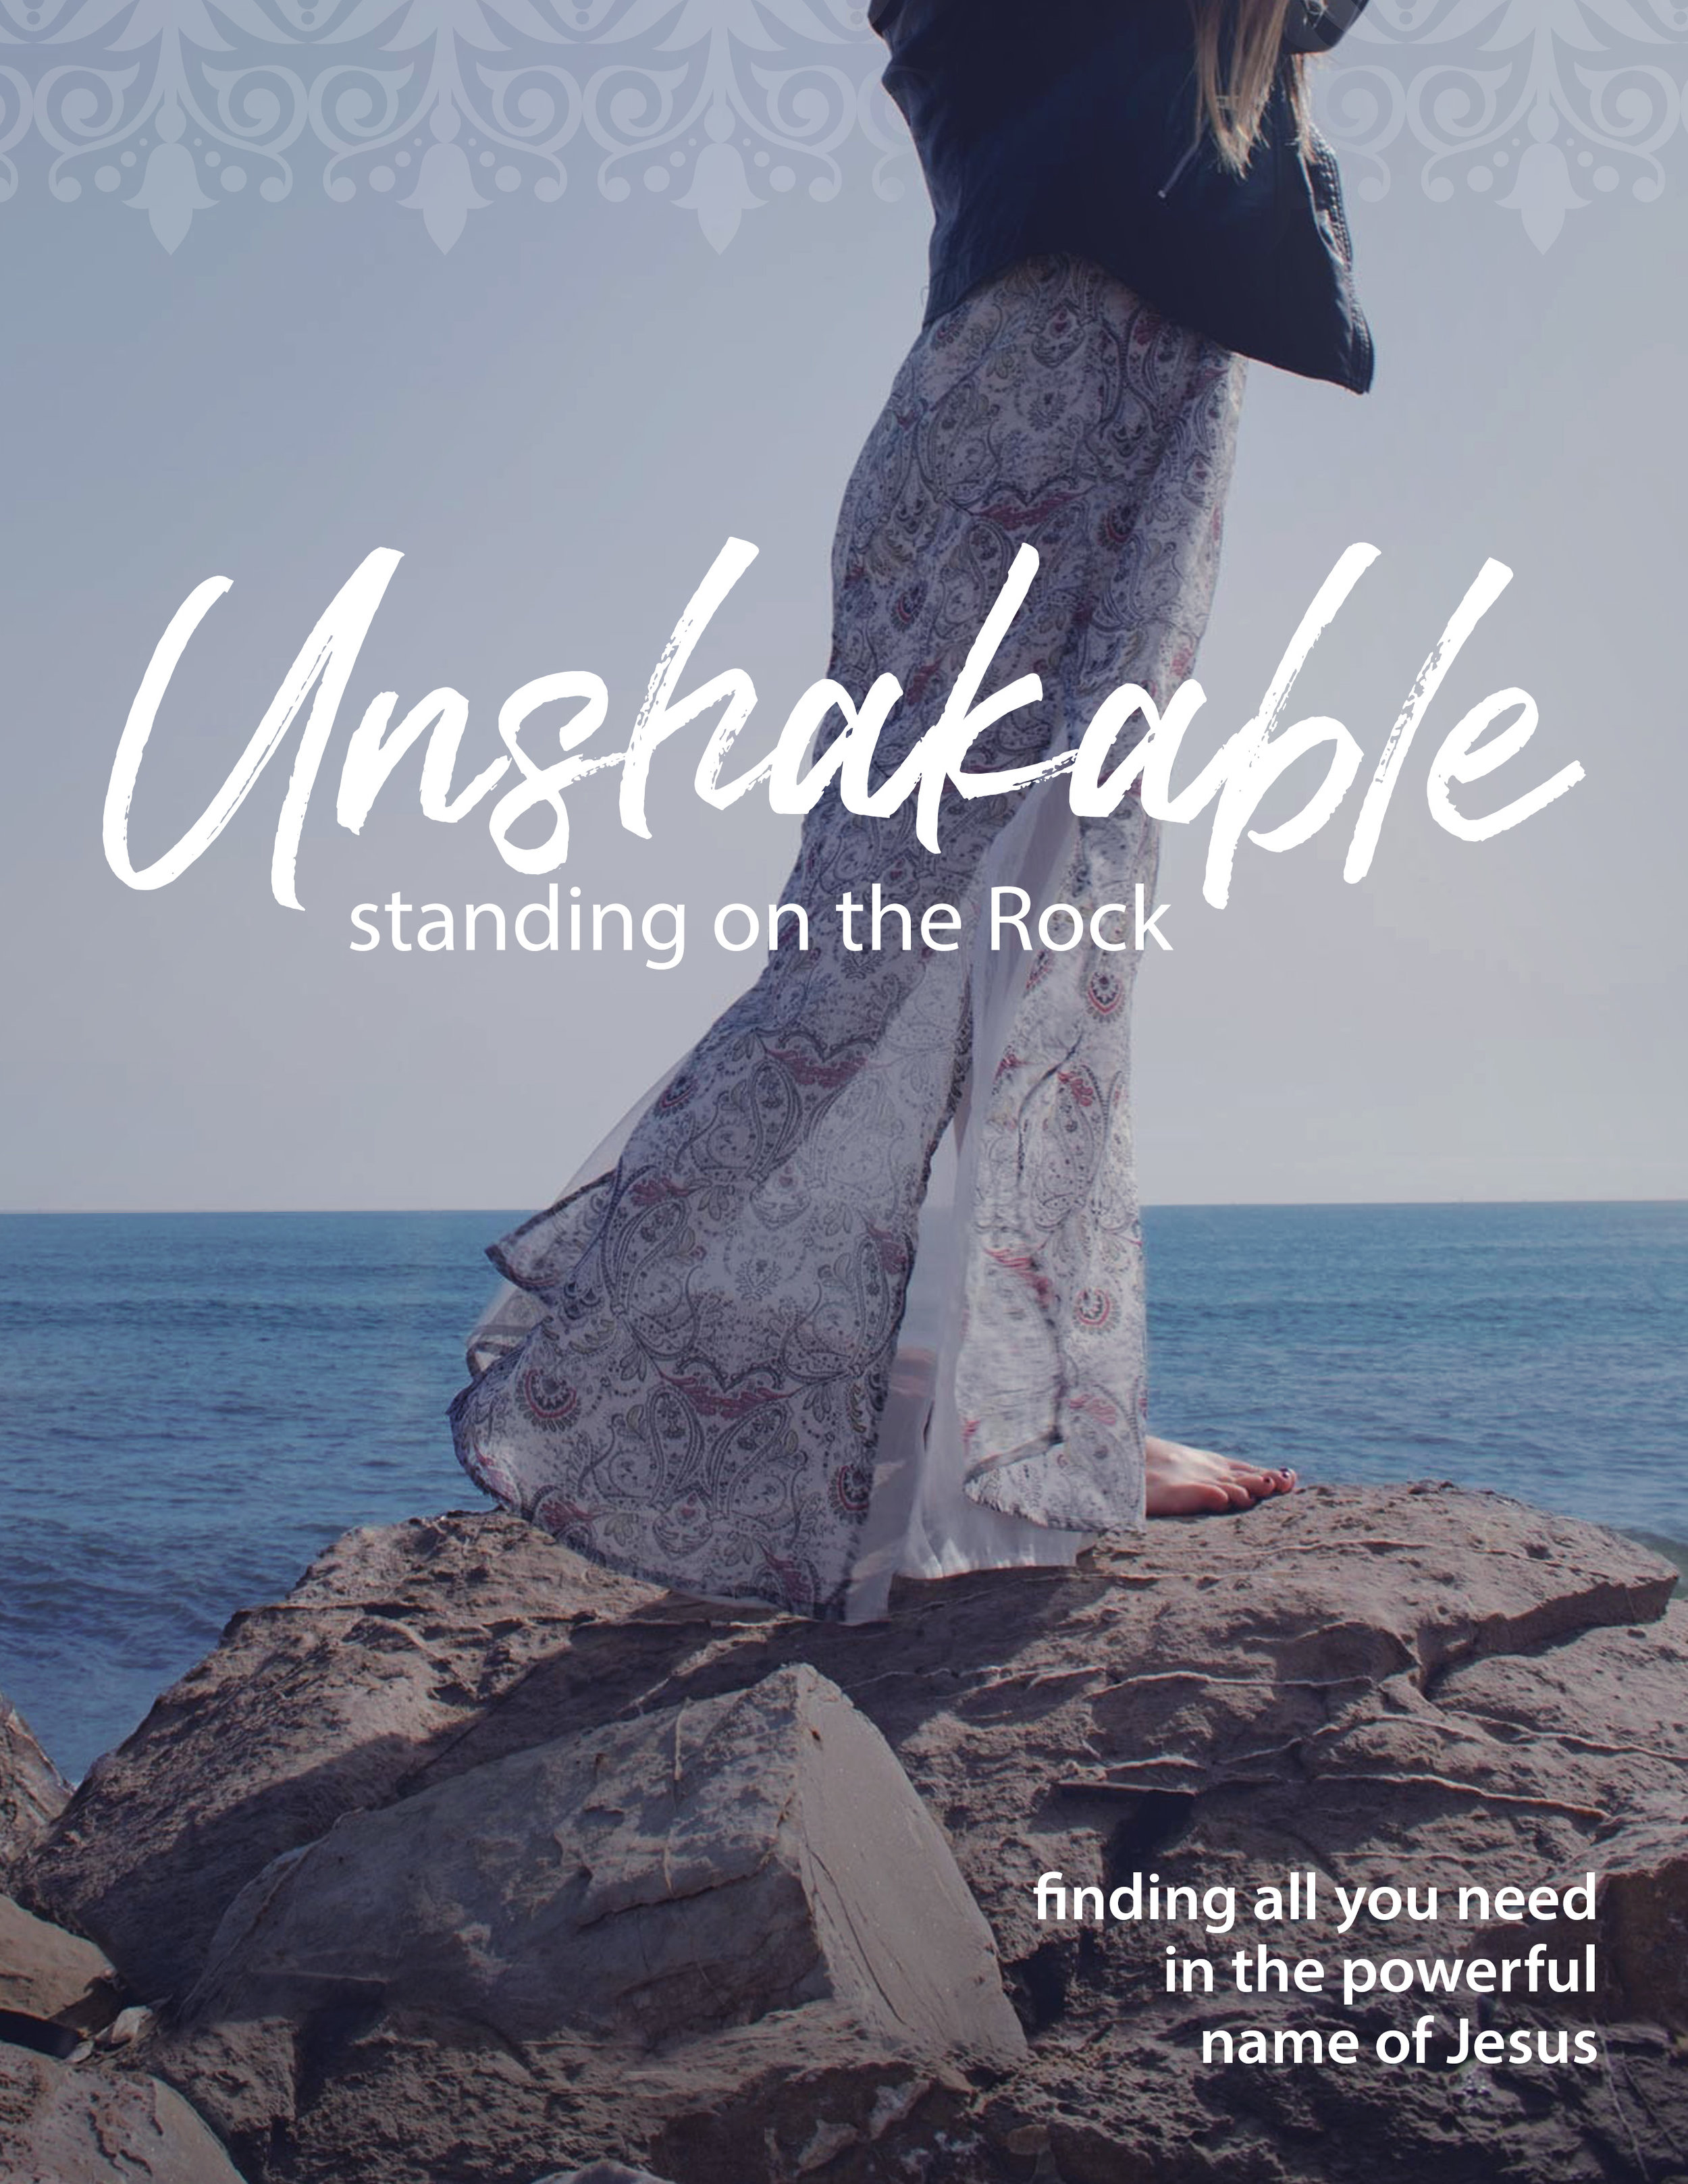 Unshakable, - standing on the RockGod is intimately acquainted with each and every detail of your life—past, present, and future. He knows you will be shaken in some way at some point and wants to prepare you for whatever lies ahead. He wants to meet you where you are right now. God wants you to be Unshakable, standing firm upon the Rock.· Have you been shaken?· Are you being shaken now?· What does it mean to be unshakable, to stand firm on the Rock?· What would it be like to lead an unshakable life?Explore what it means to be Unshakable and to find all you need in the powerful Name of Jesus. Join us for this 10 week study:Wednesdays beginning September 11, 2019The Chapel Libertyville9-11amClick HERE for registration details.ANDThursdays beginning September 19, 2019Christ Church, Lake Forest9:15-11:15amClick HERE for registration details.